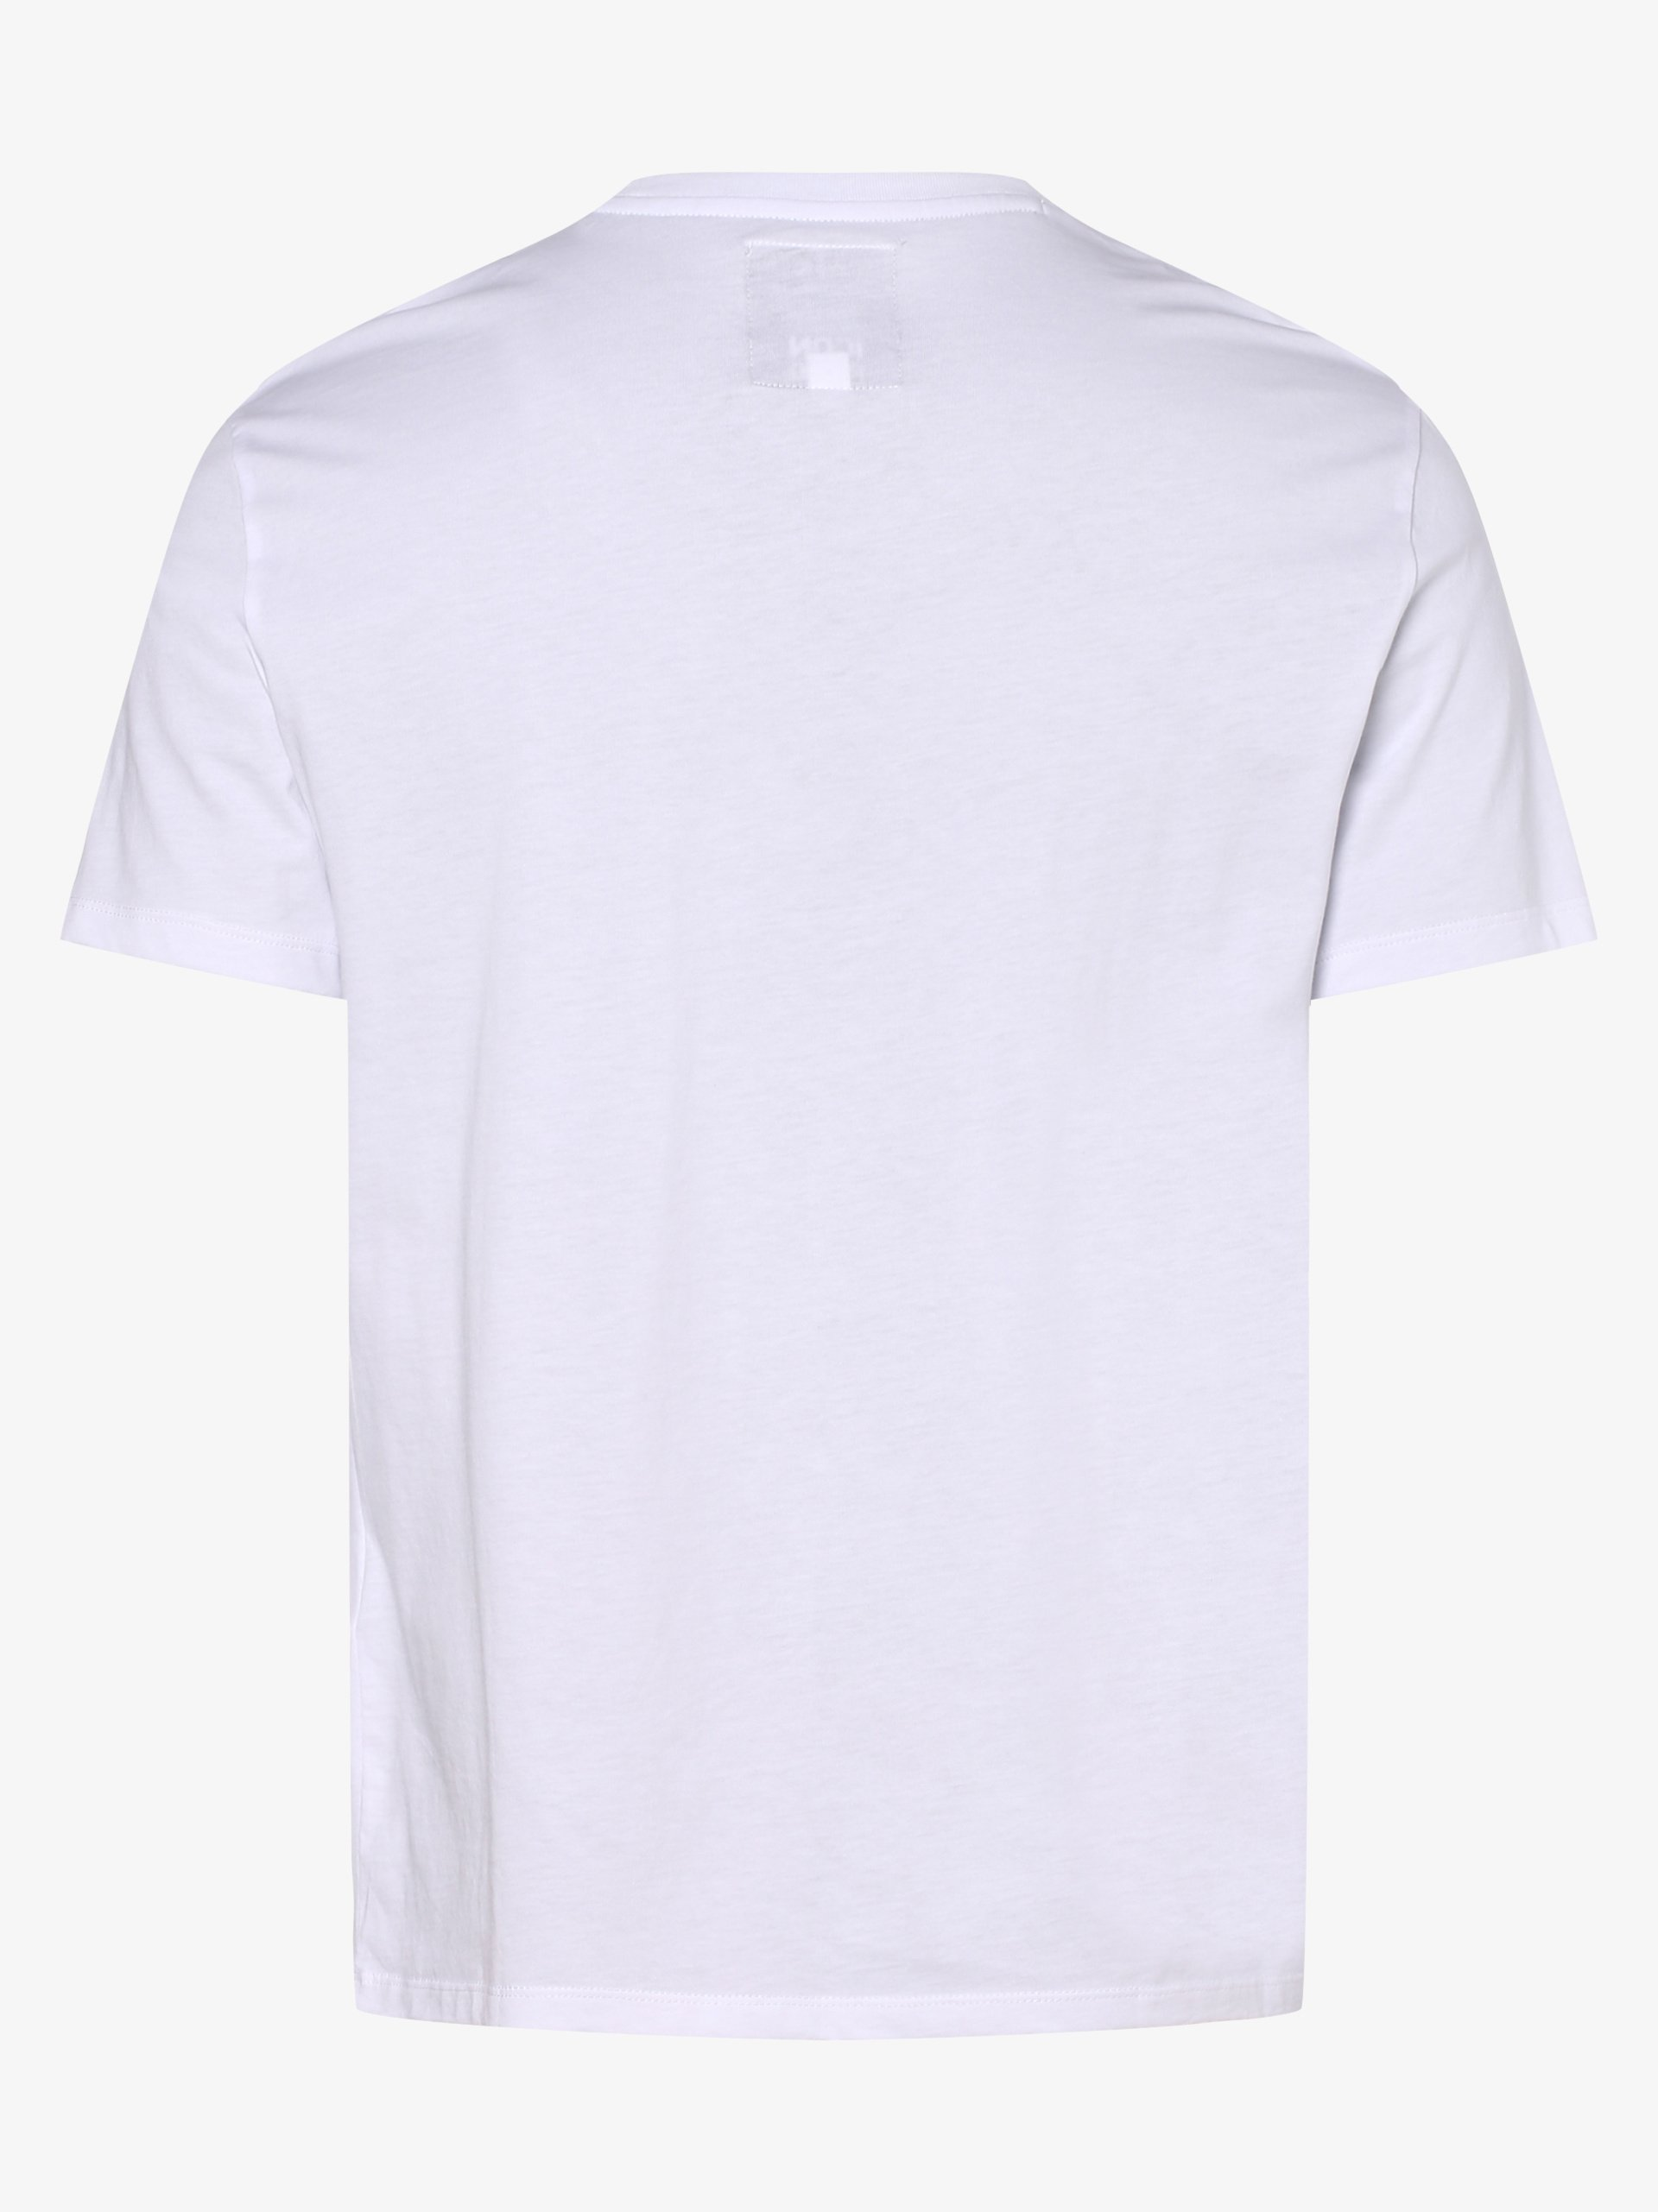 Armani Exchange T-shirt męski